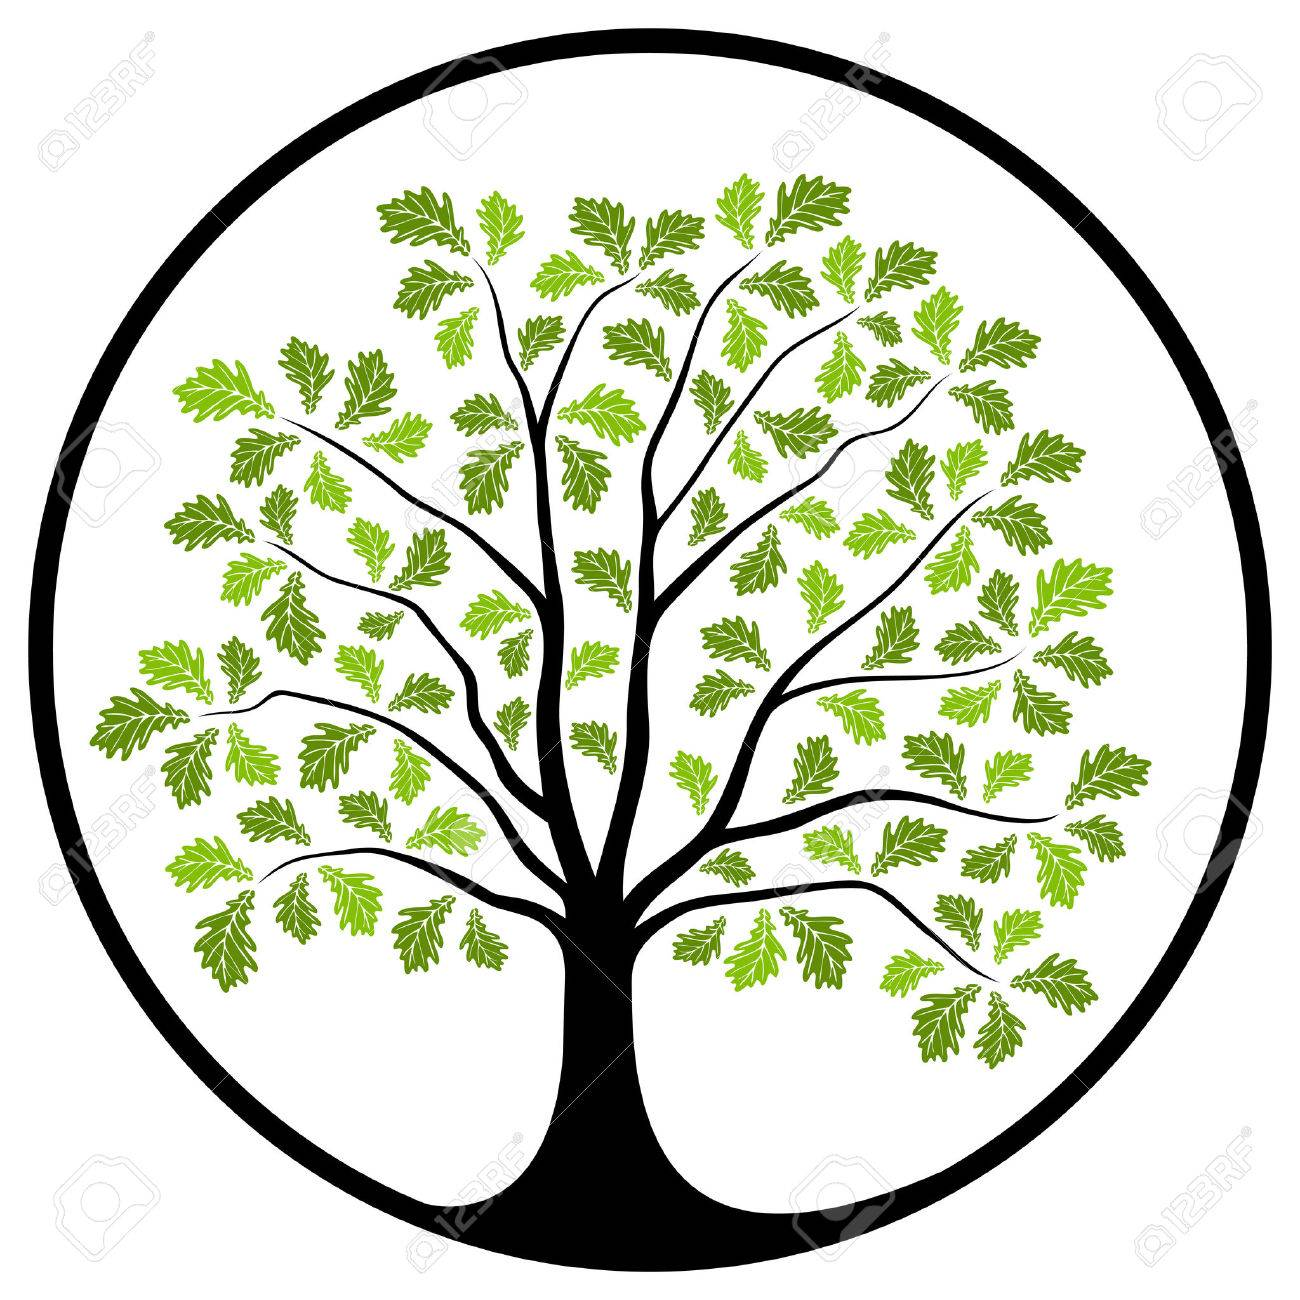 clipart oak tree at getdrawings com free for personal use clipart rh getdrawings com oak tree clip art free oak tree clipart silhouette